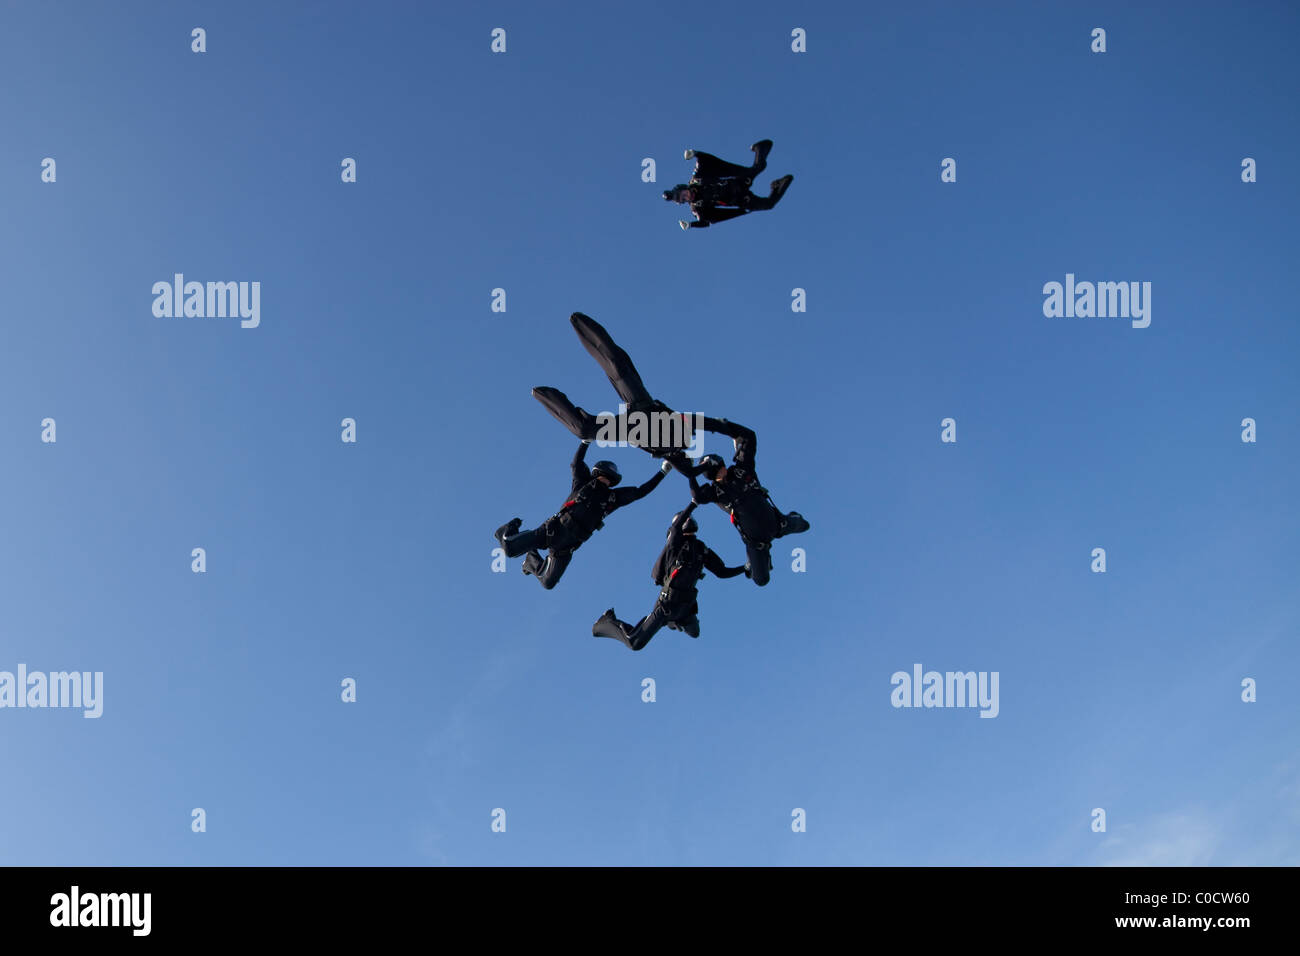 Professional formation skydivers are holding each other together and get filmed by a camera flyer. - Stock Image